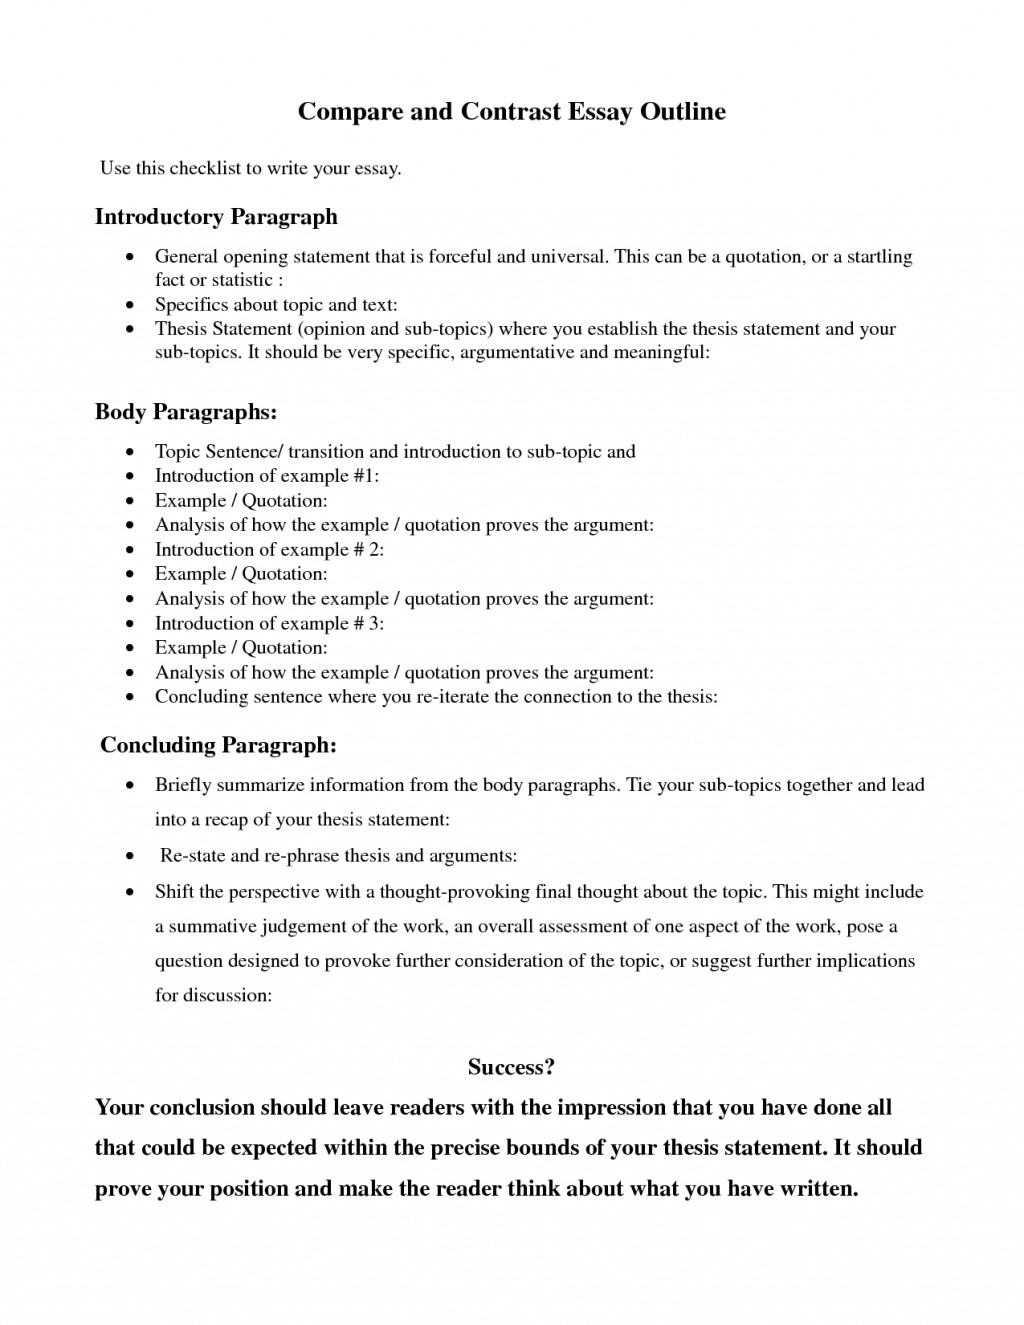 007 Argumentative Research Paper Vs Expository Essays Awful Large